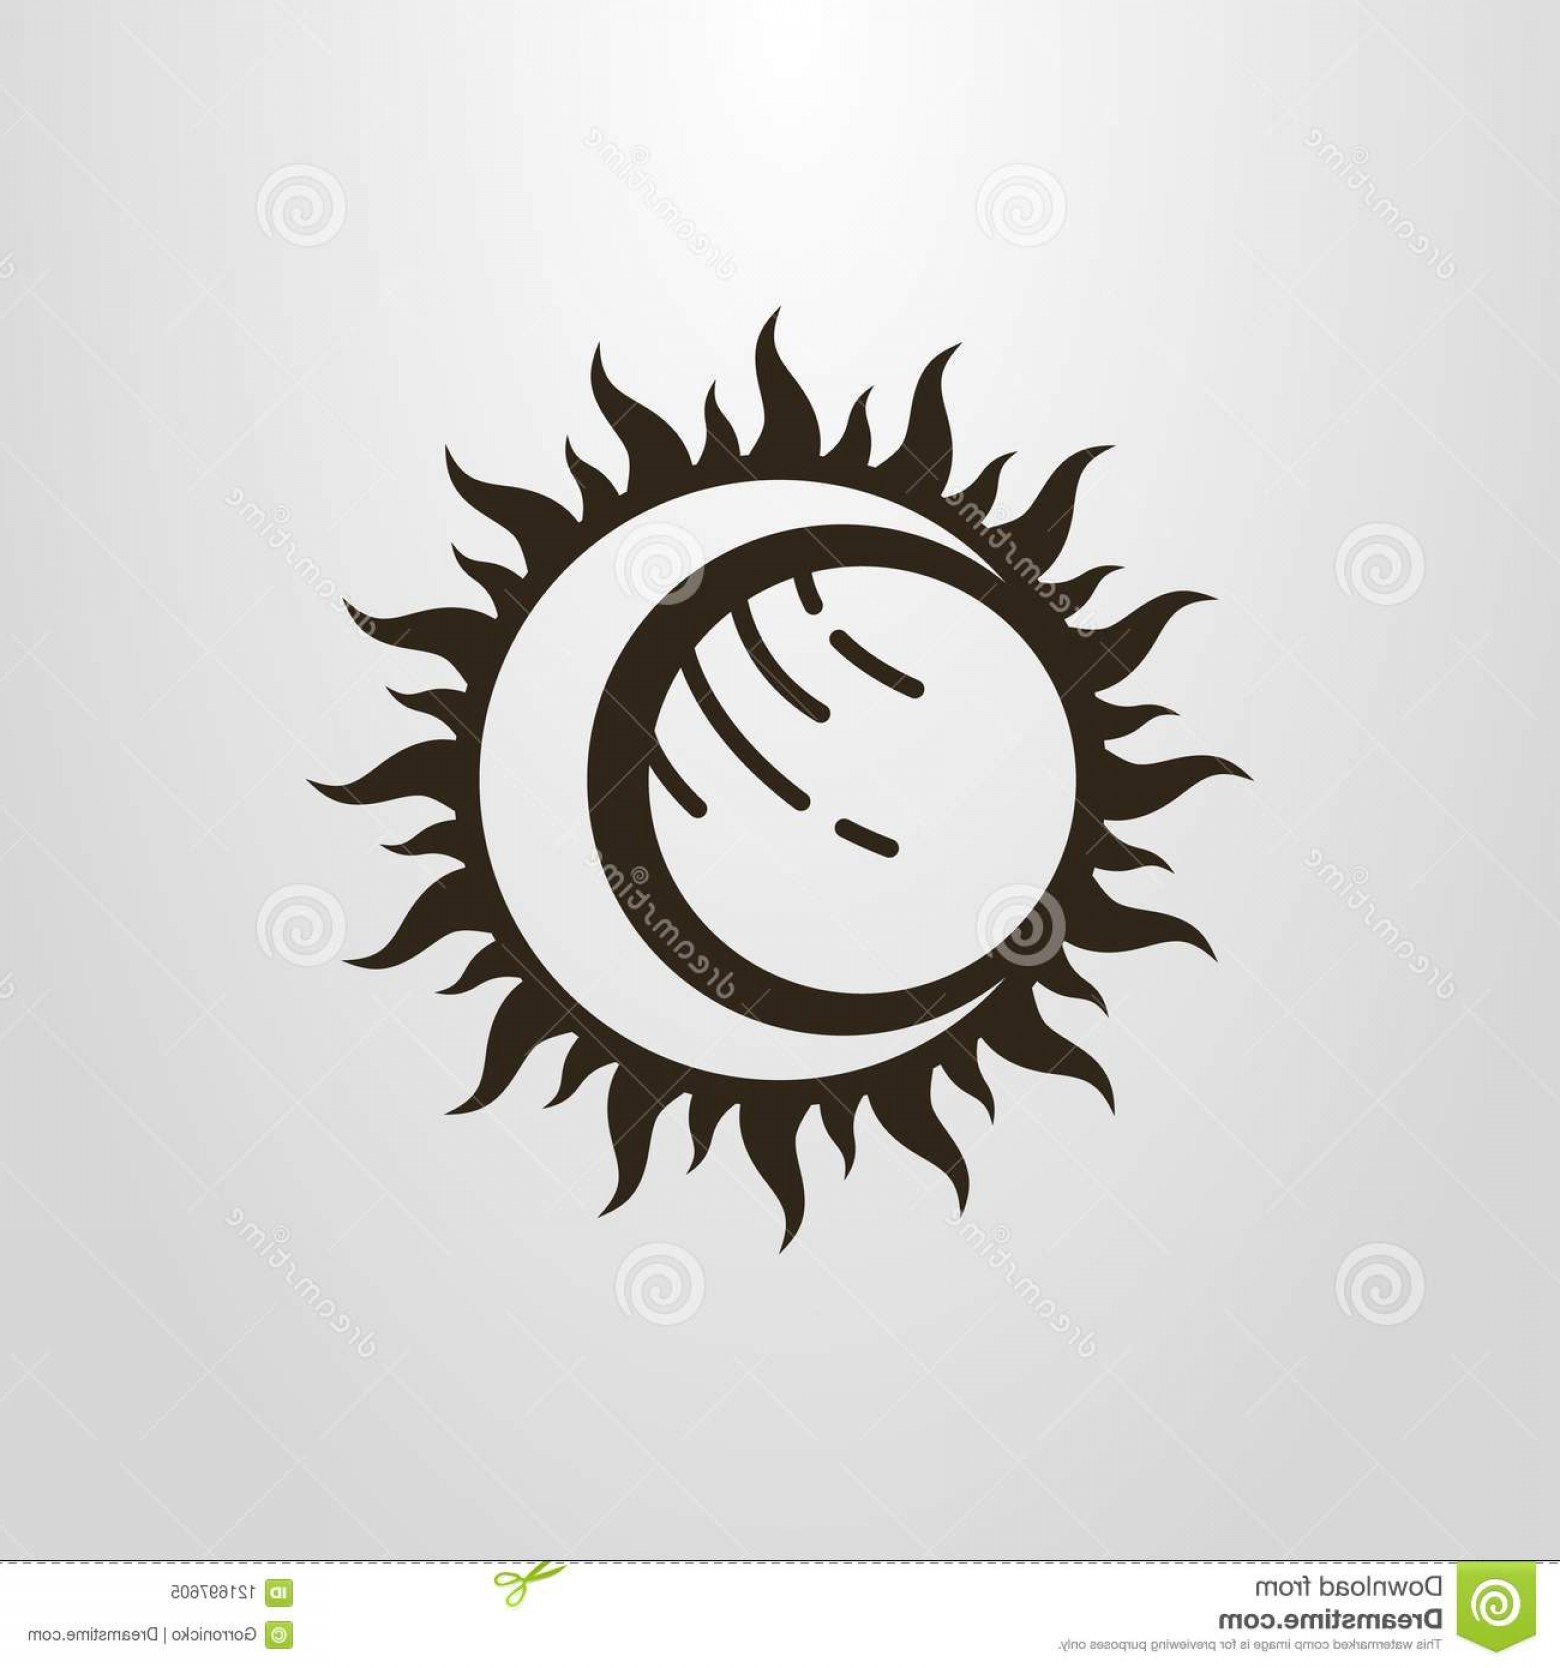 Whitew Eclipse Vector: Black White Simple Vector Symbol Sun Moon Planet Eclipse Simple Vector Symbol Sun Moon Planet Eclipse Image